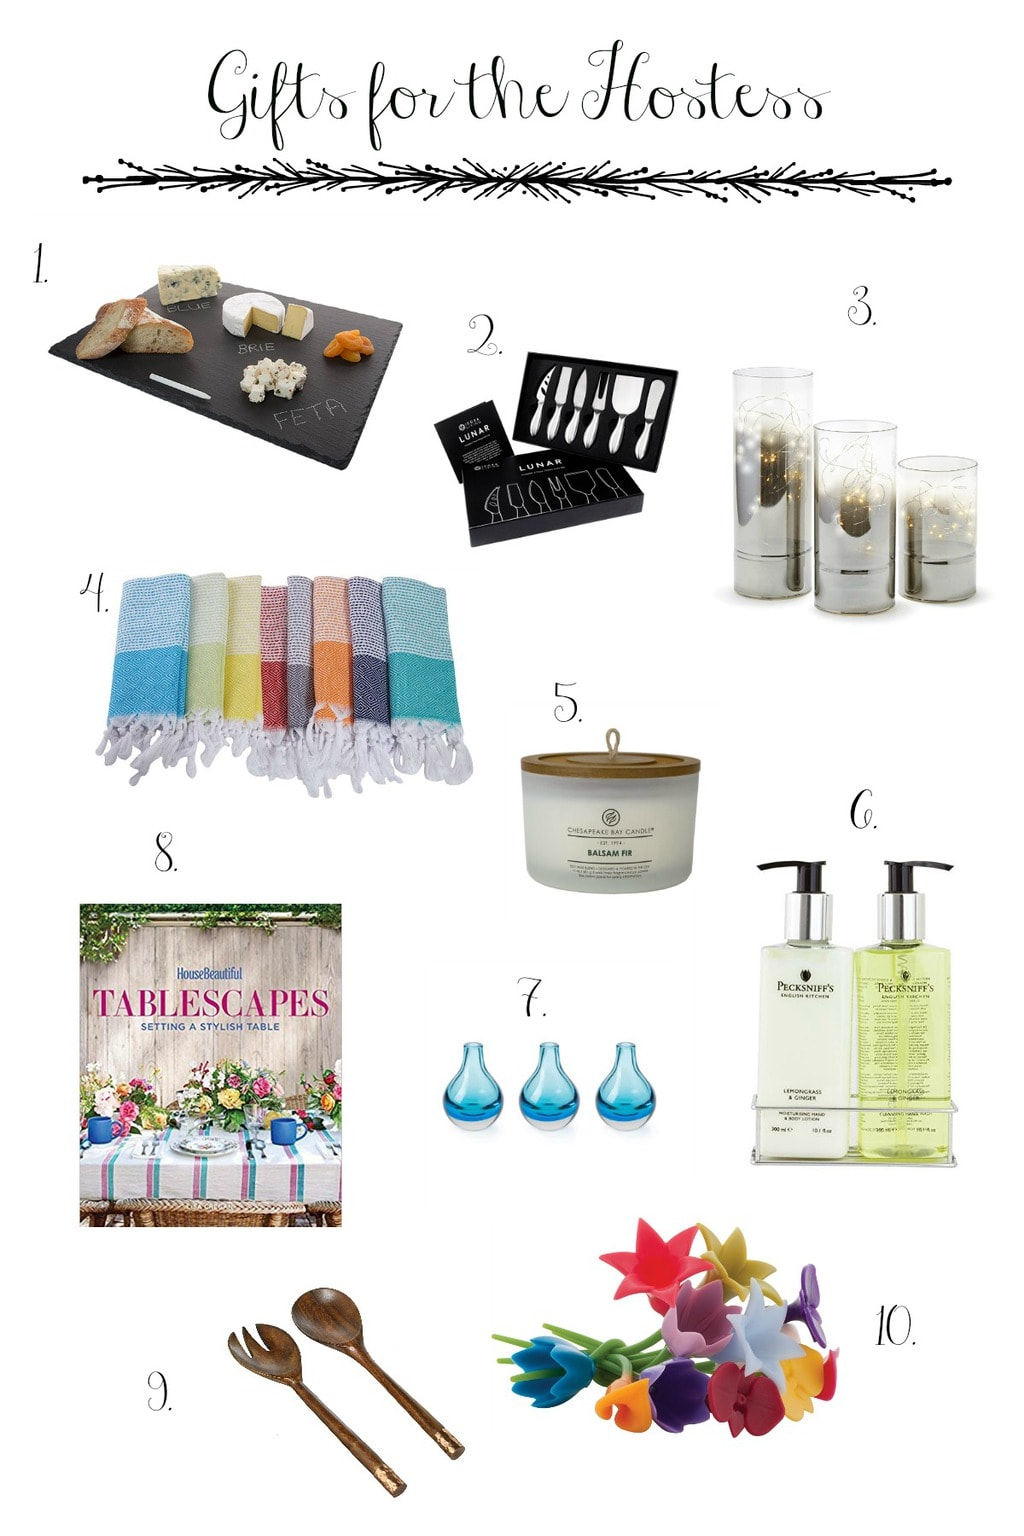 Images of our gift guides for the hostess